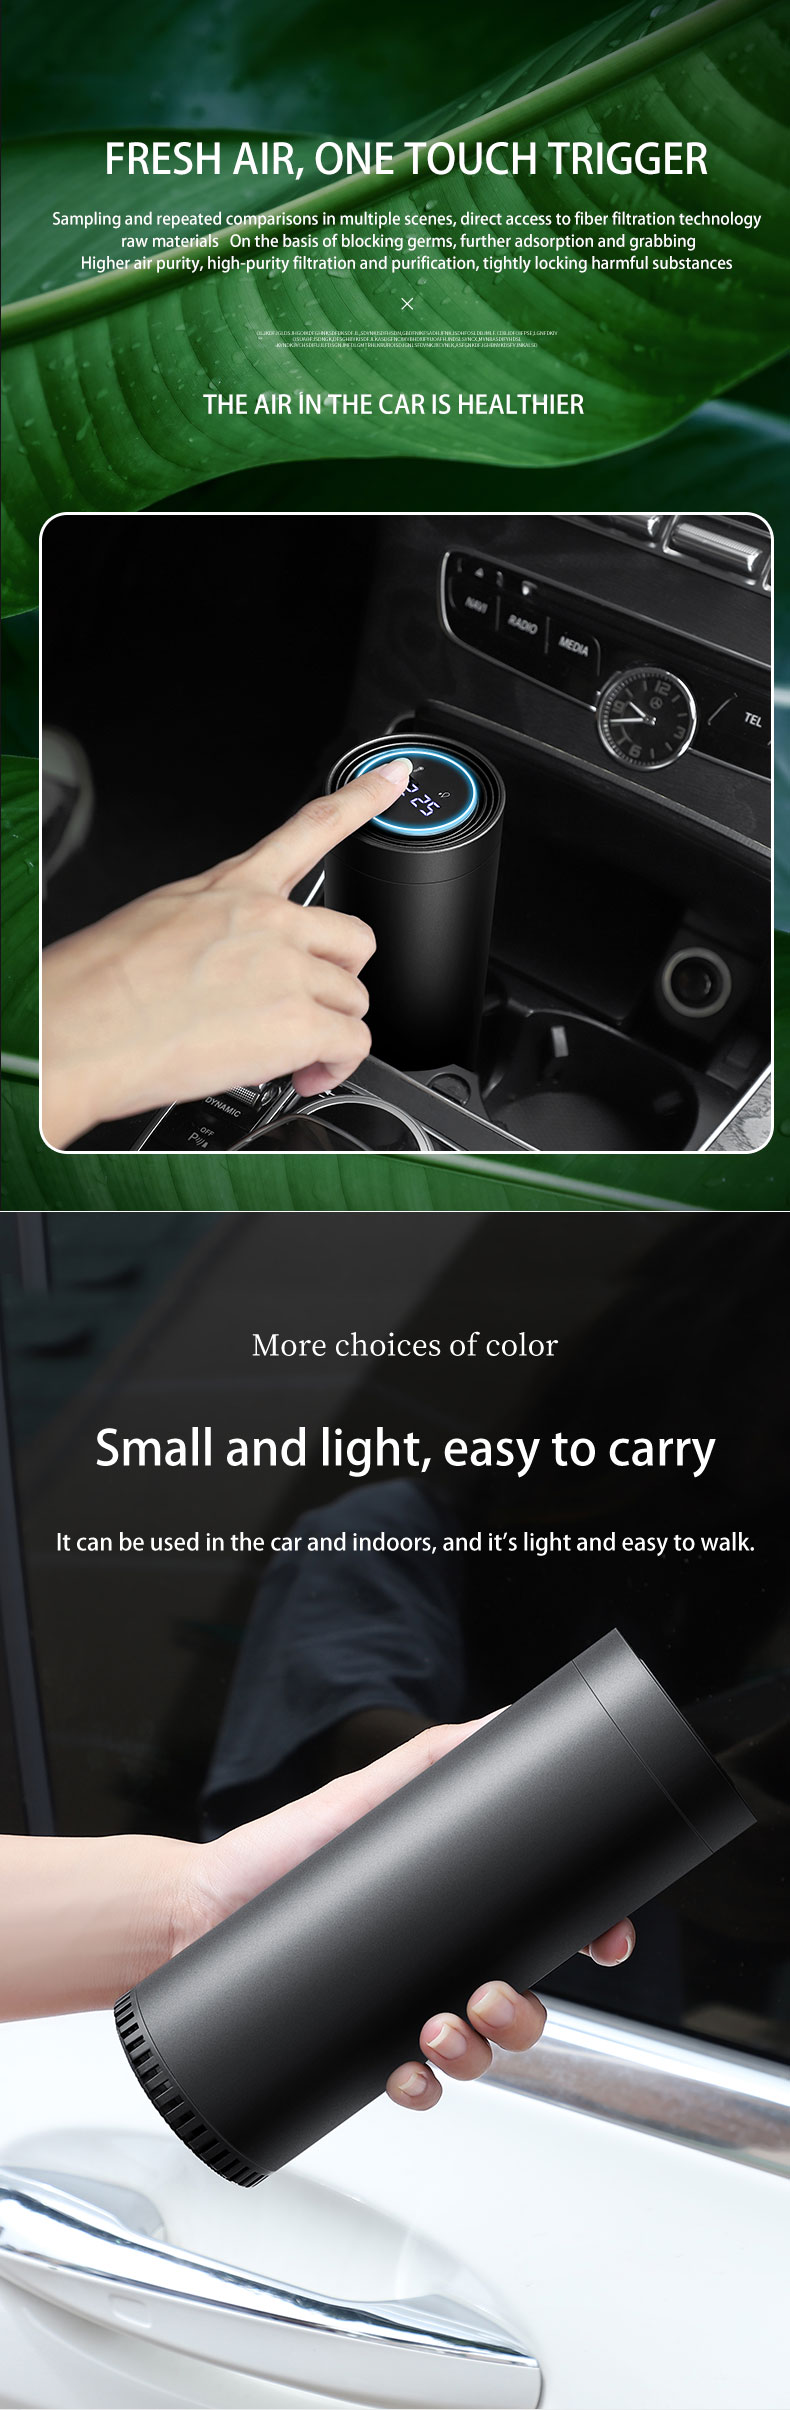 Bamboo Charcoal PM 2.5 Display Mini Auto Smart Usb Portable Uv Ionizer Hepa Cleaner Car Air Purifier With Hepa Filter